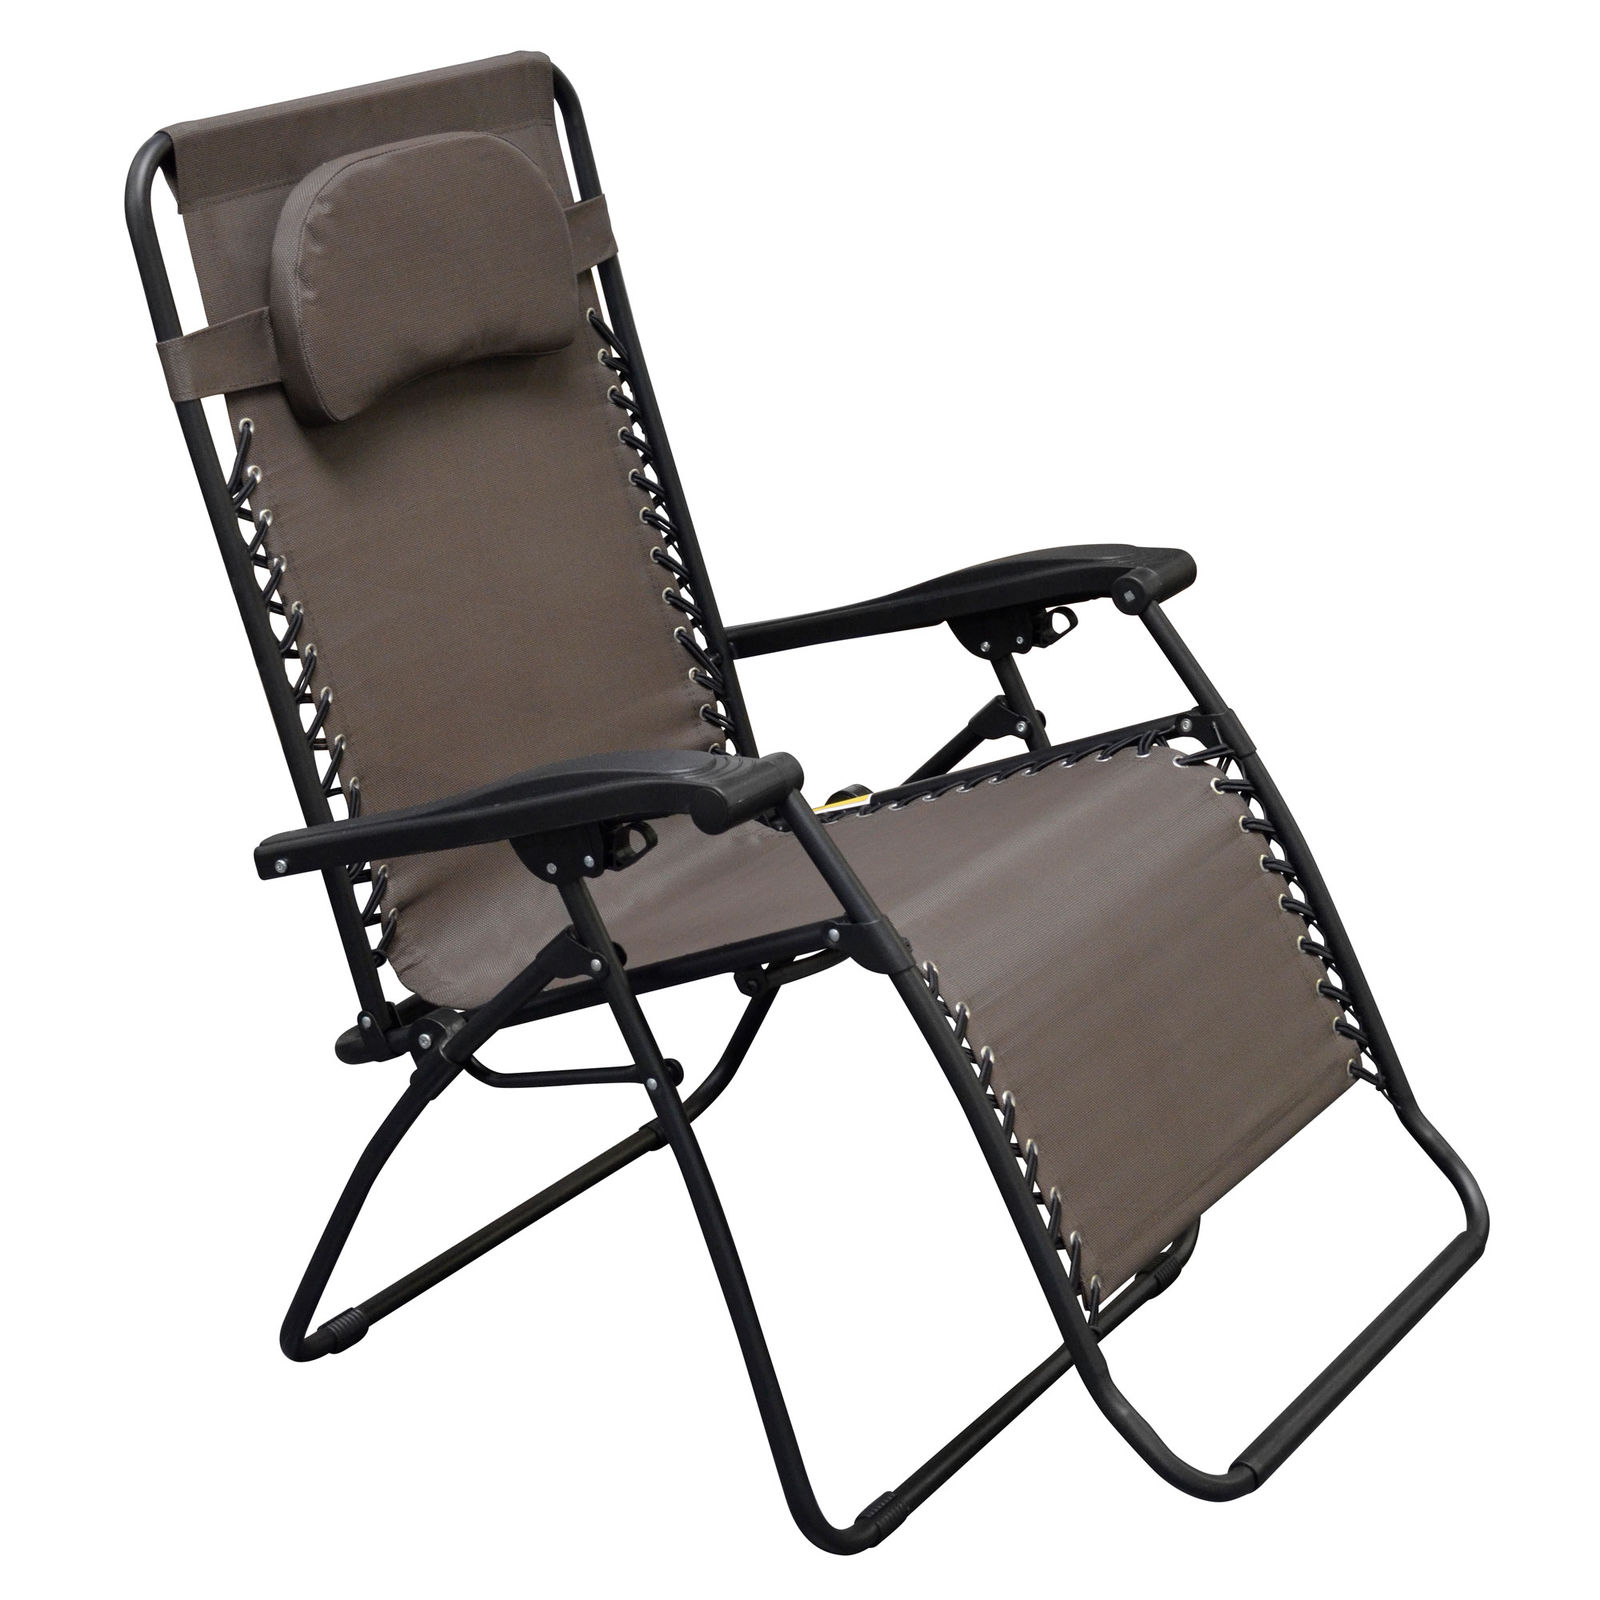 Caravan Canopy Infinity Zero Gravity Steel Frame Oversized Patio Chair, Brown Intended For Newest Caravan Canopy Zero Gravity Chairs (View 25 of 25)